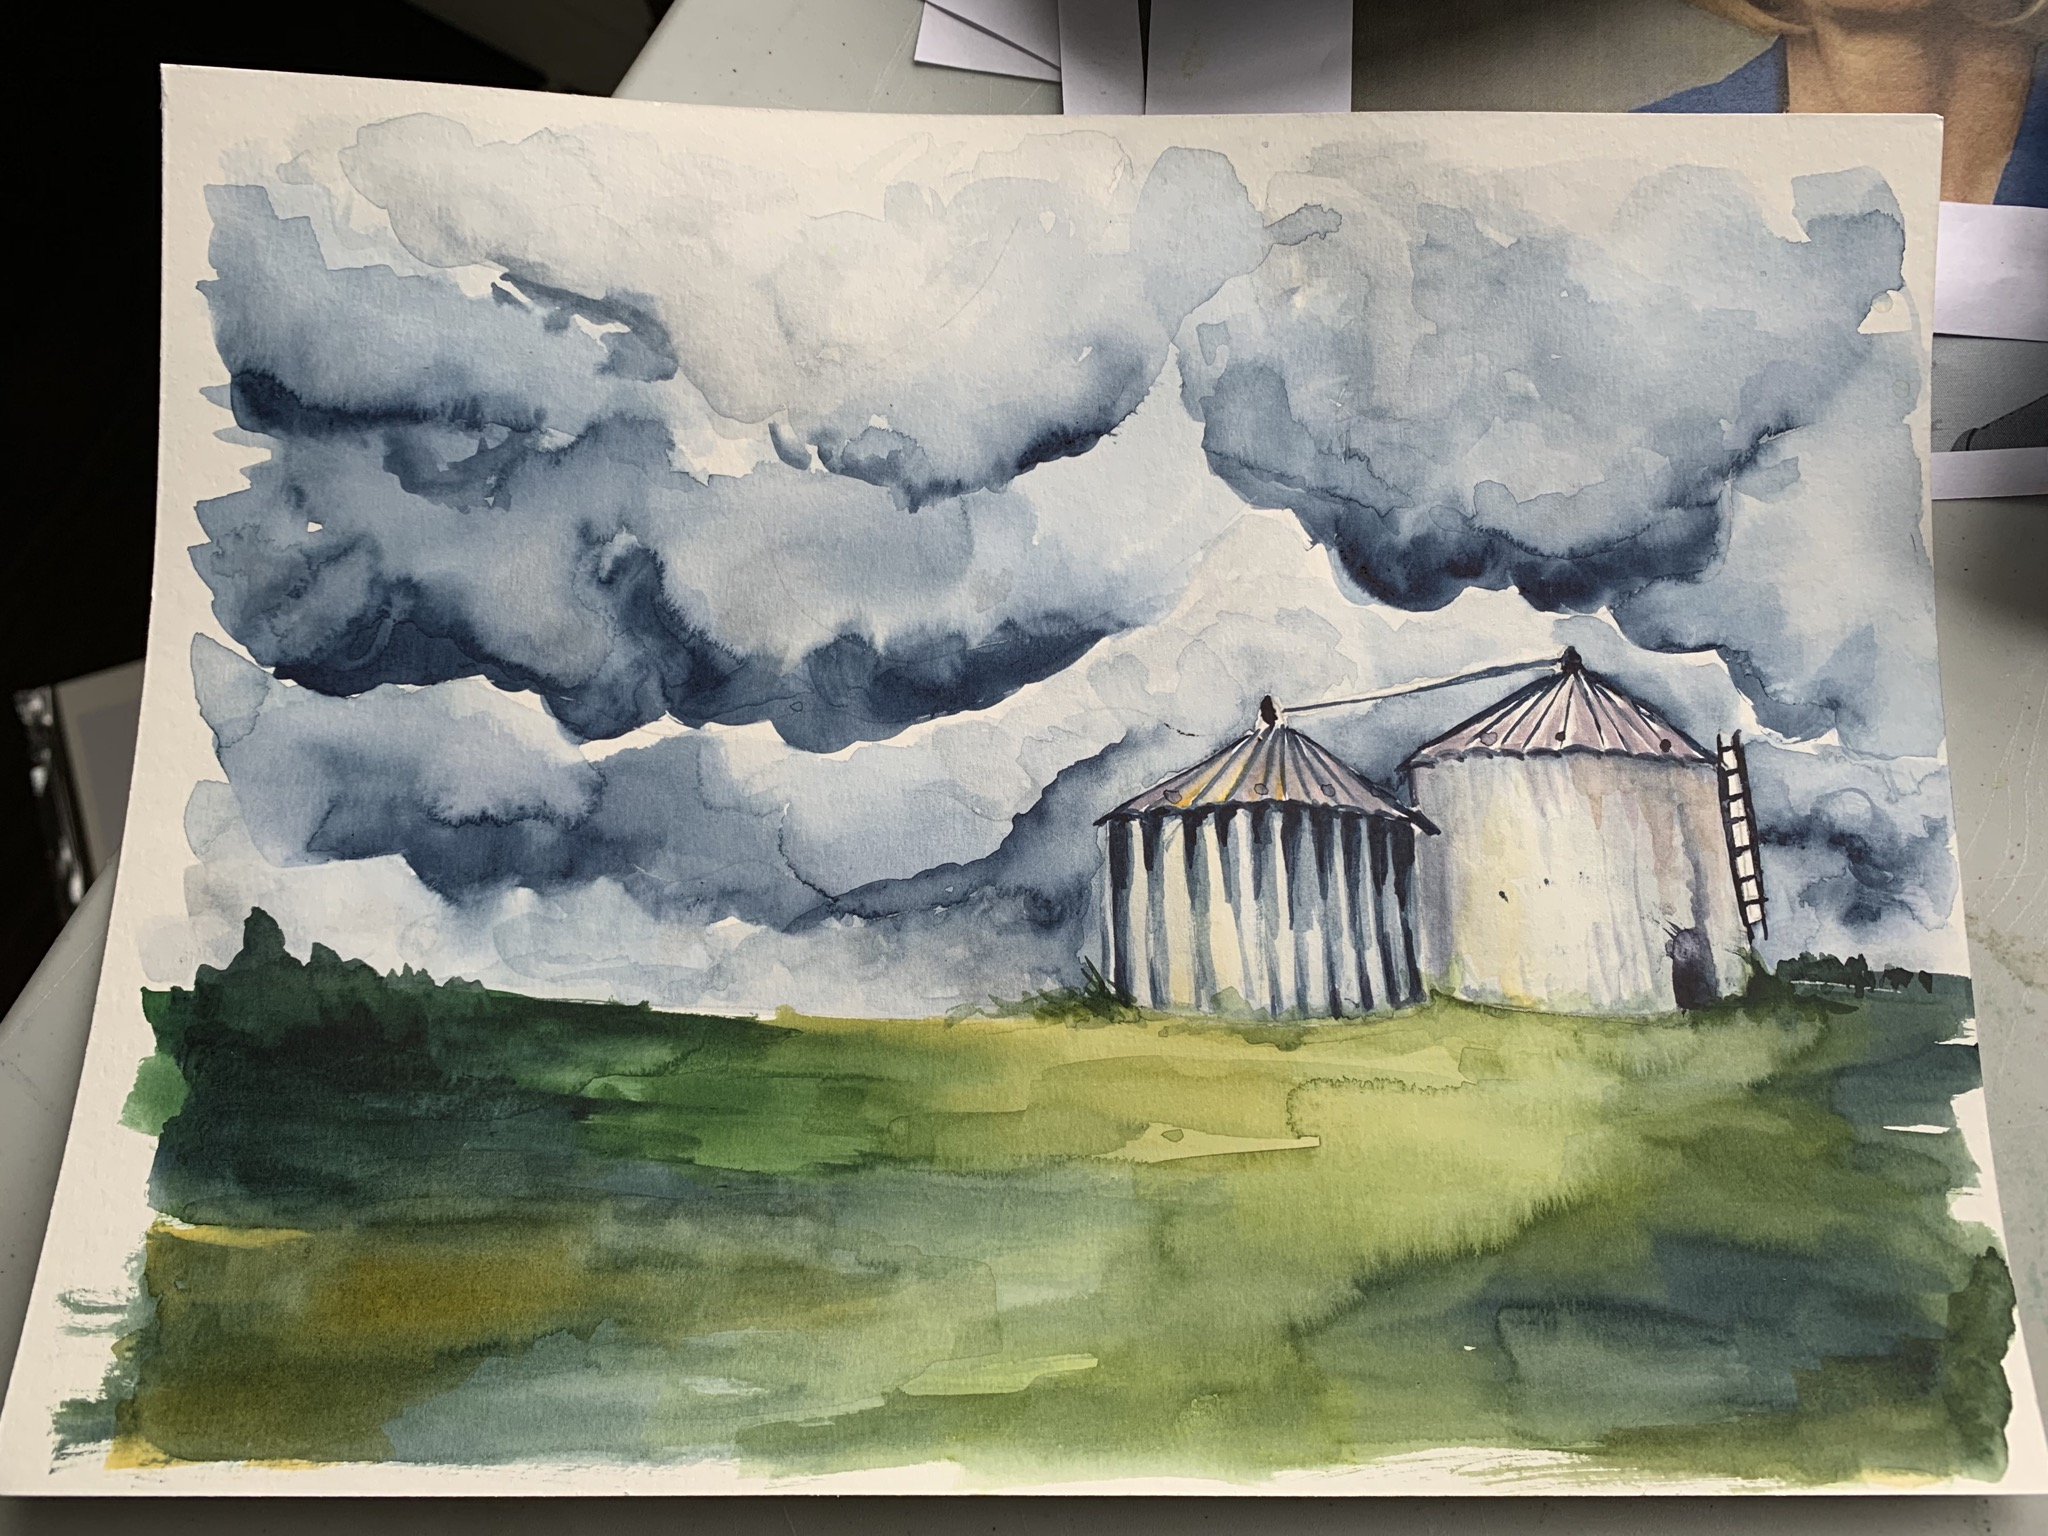 173E03E7 BB43 4850 B2D7 8F9F47161B8F Watercolor storm